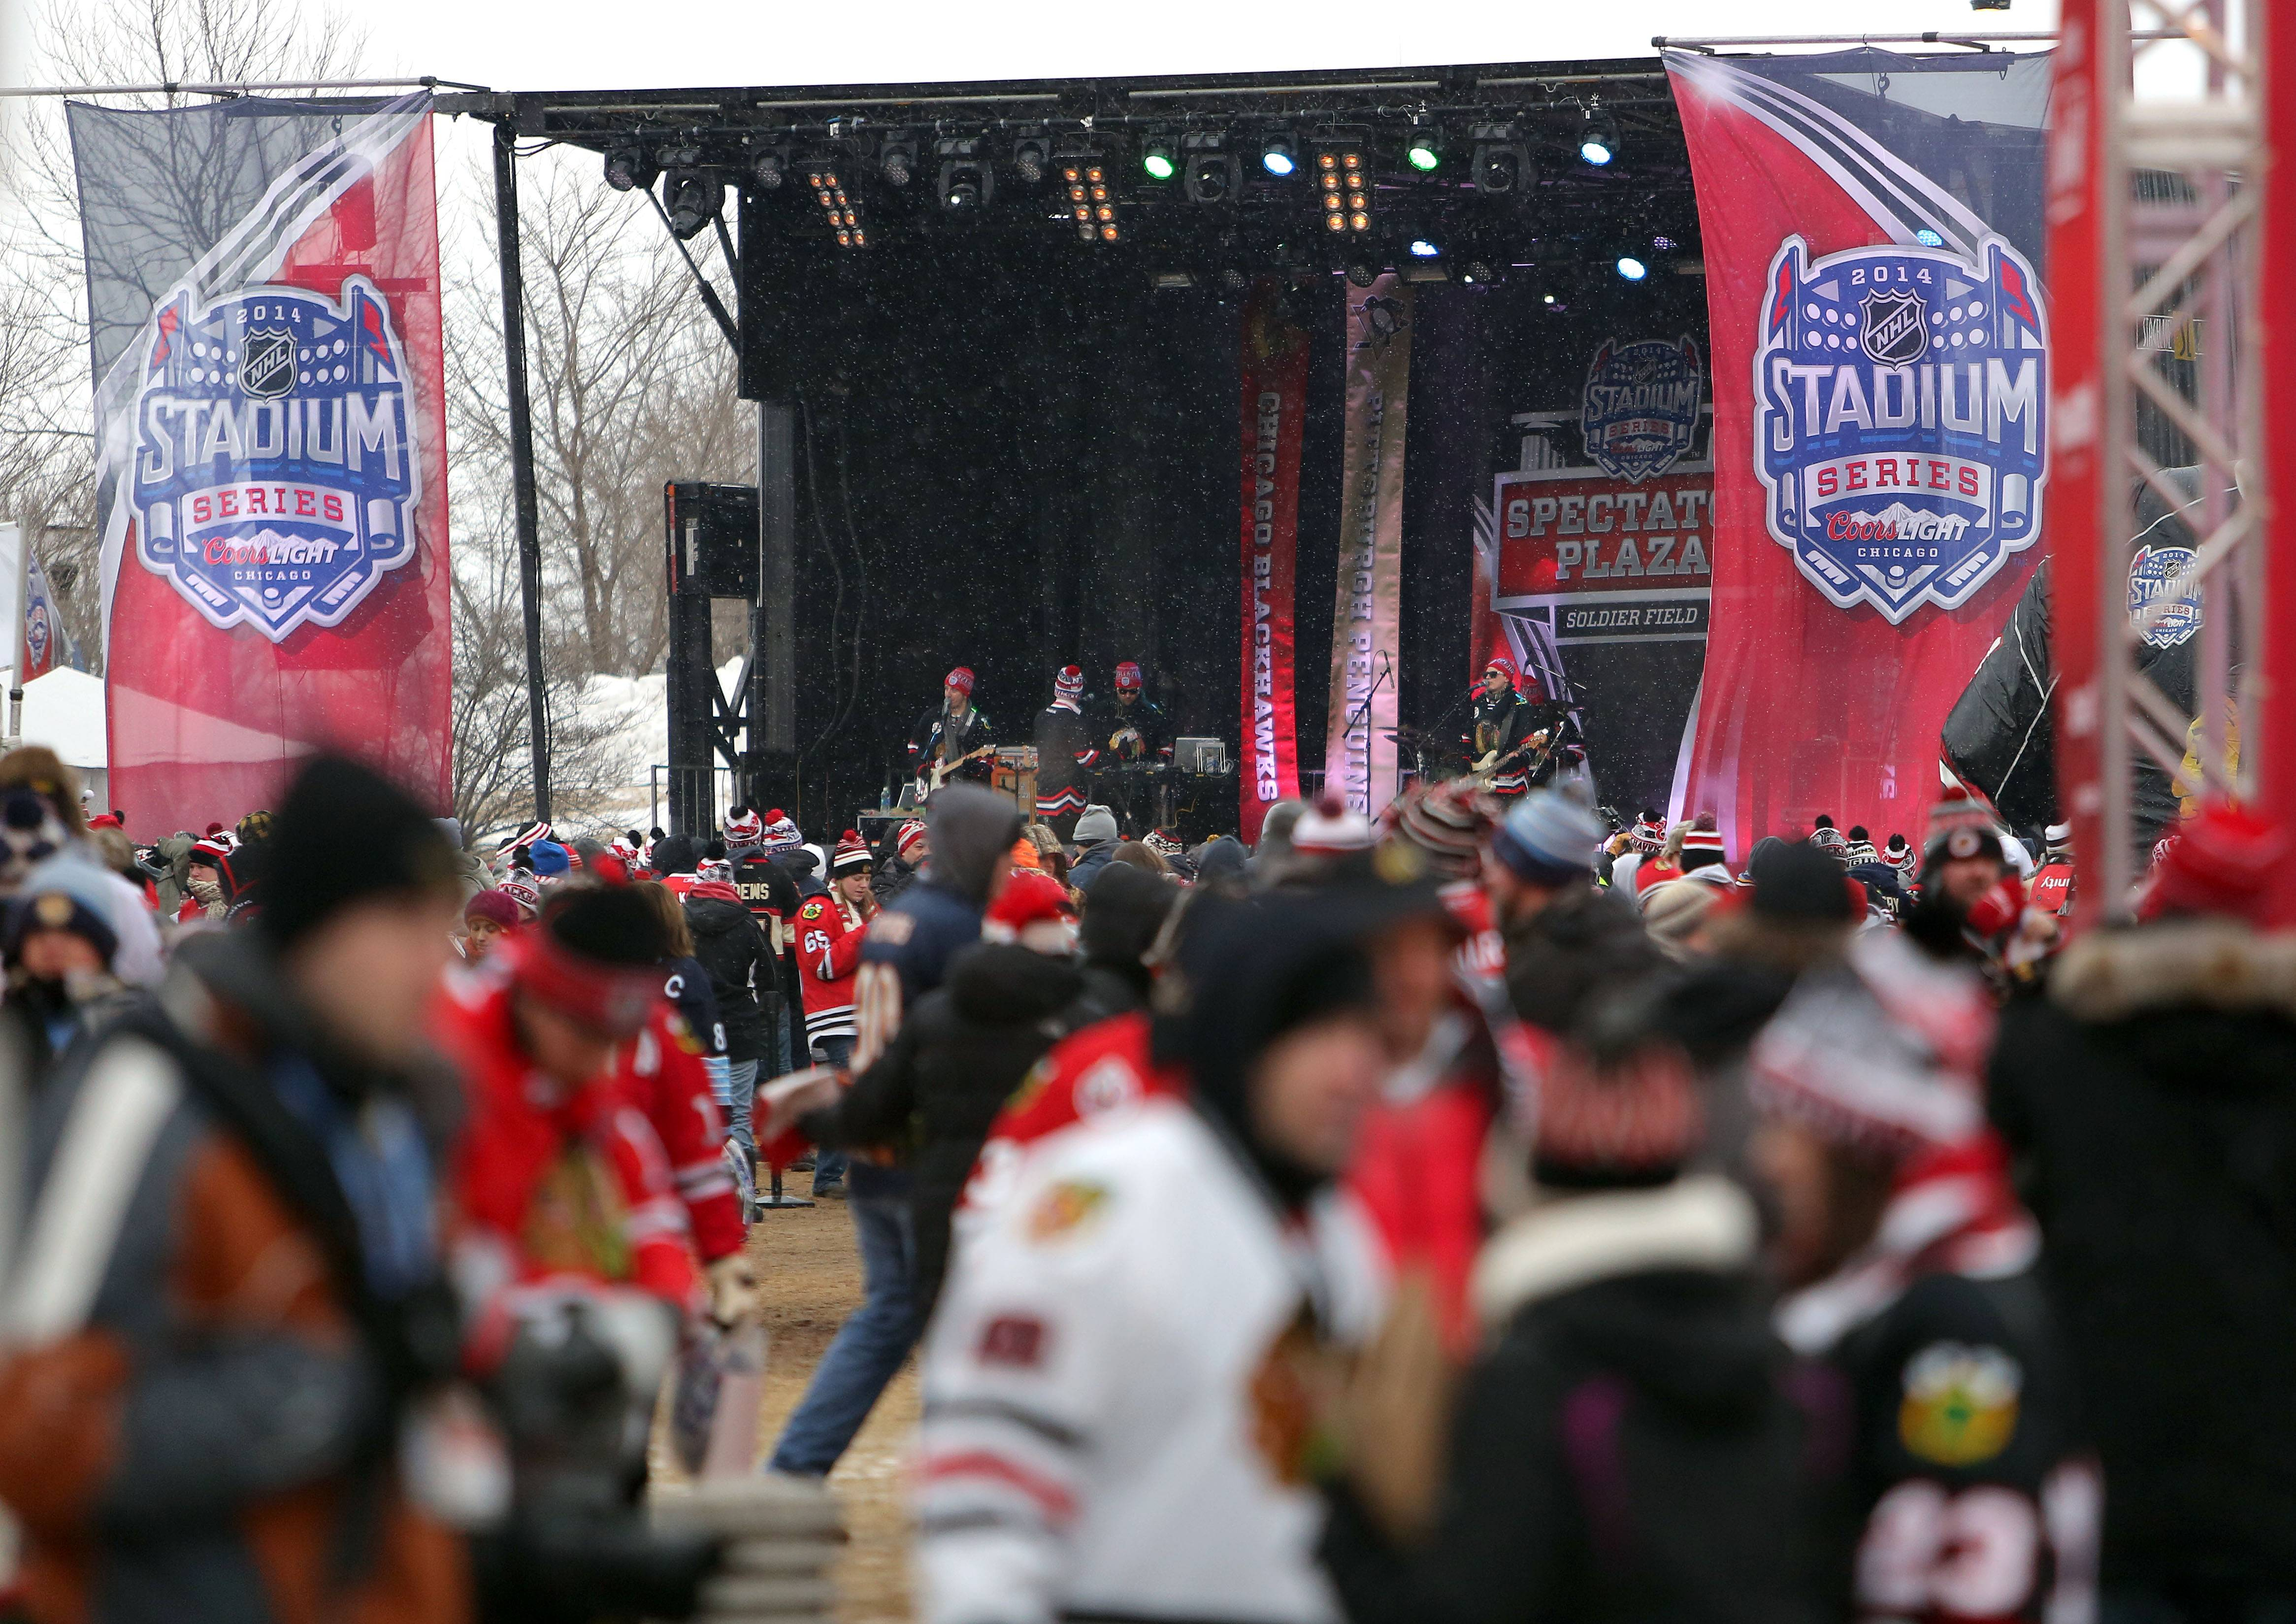 People attend the spectators plaza prior to the Blackhawks vs Penguins NHL Stadium Series Saturday at Soldier Field.